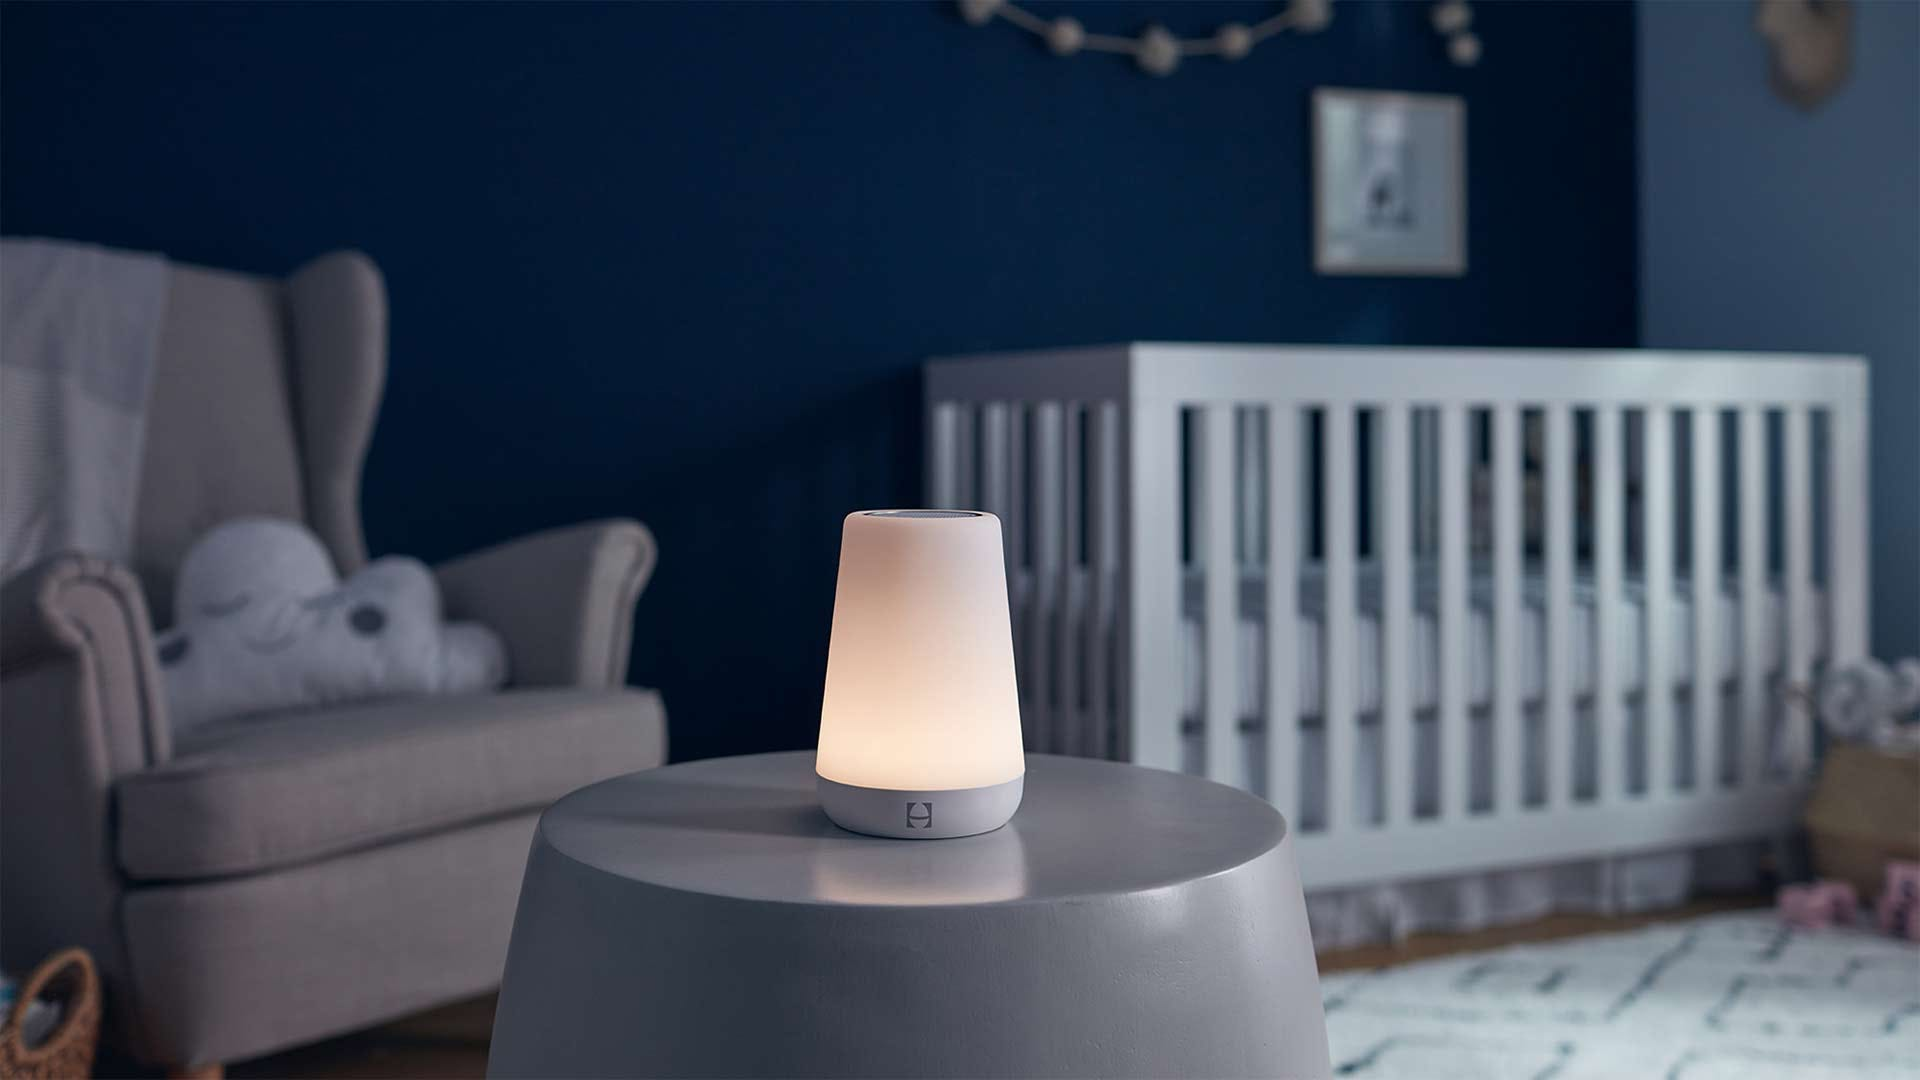 A Hatch Rest light in a peaceful blue and white baby nursery.